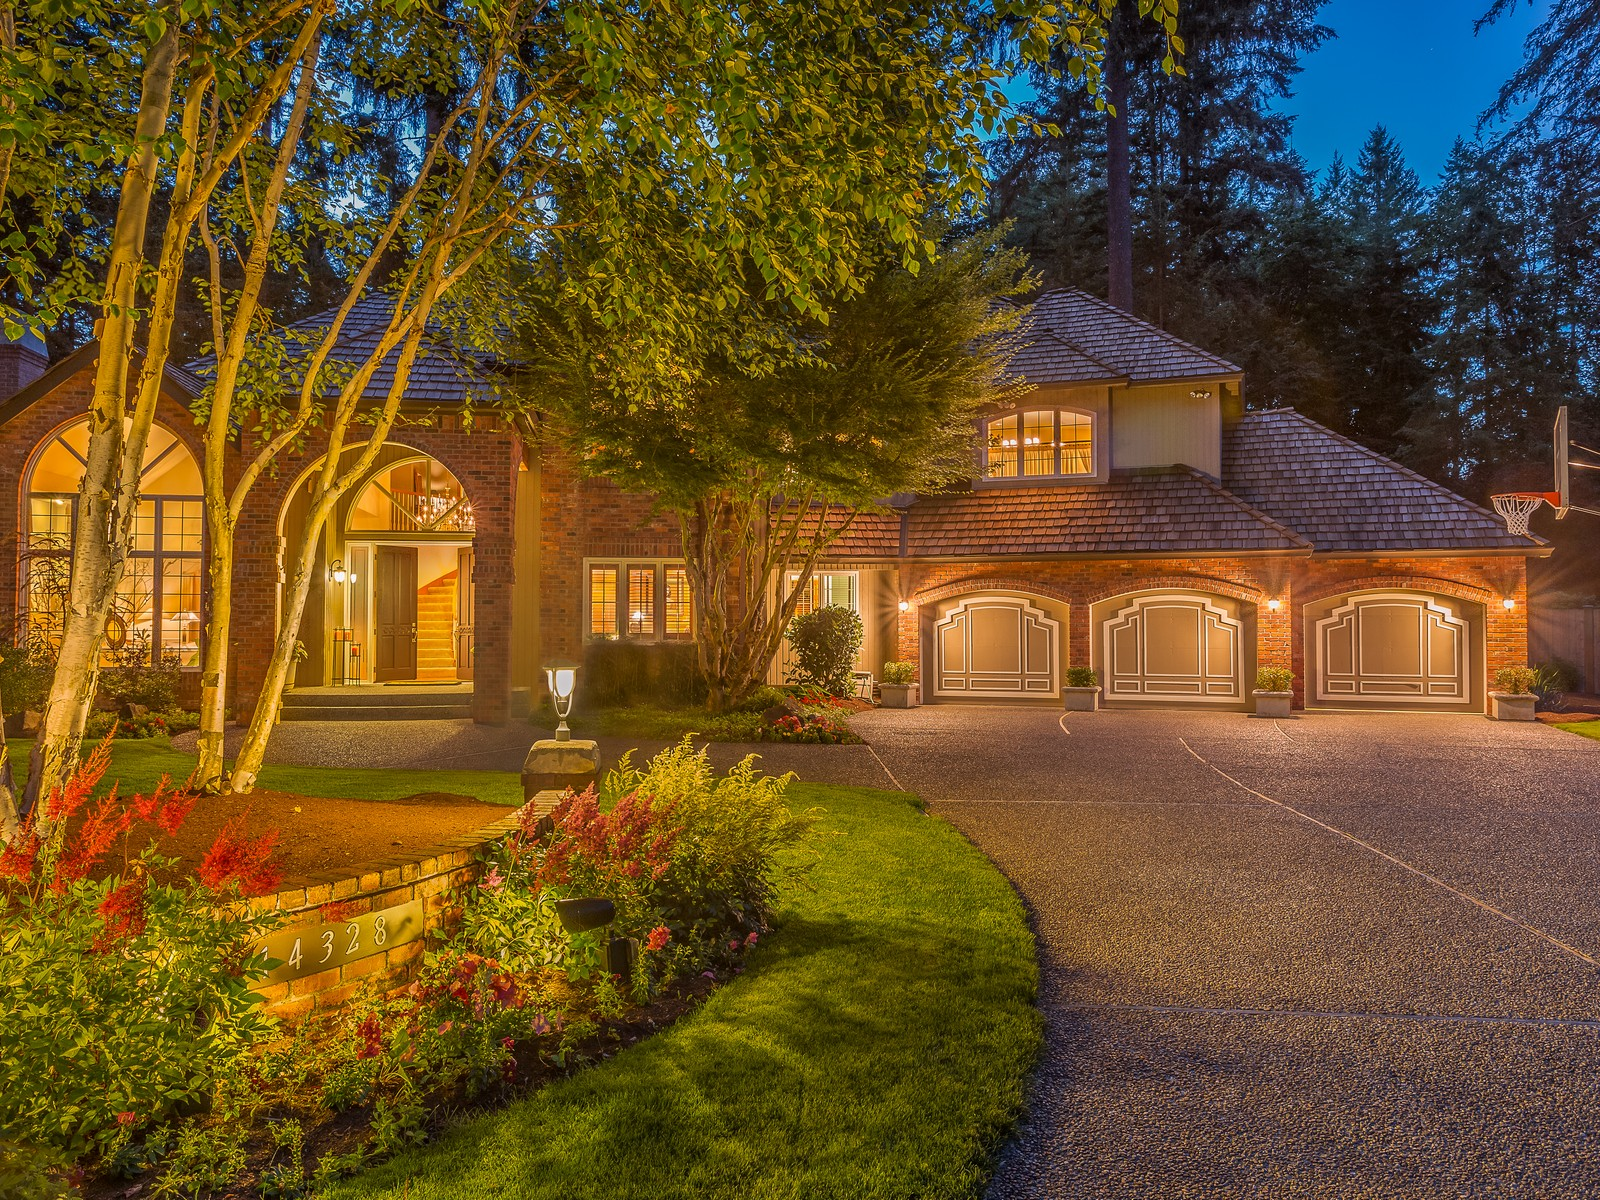 Single Family Home for Sale at Crossings at Cottage Creek 14328 196th Ct NE Woodinville, Washington 98077 United States